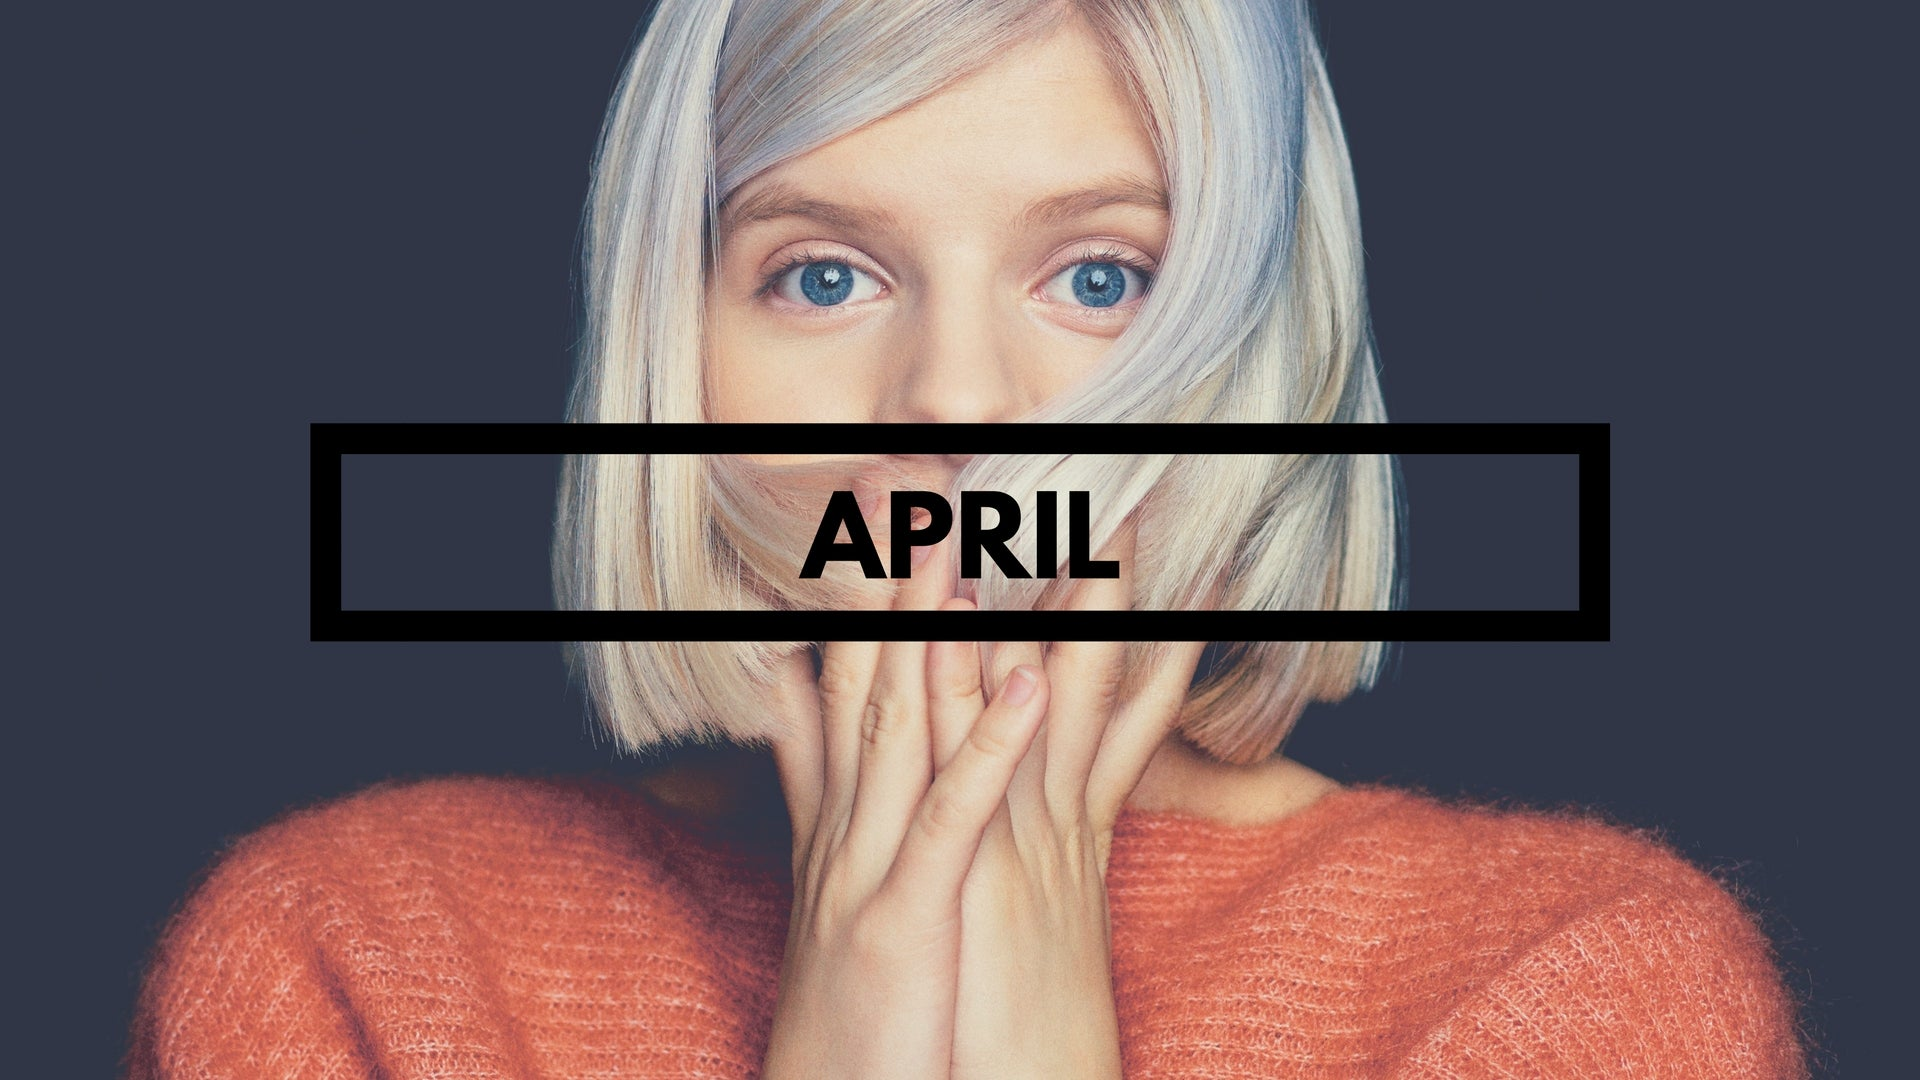 April Breakthrough Record: All My Demons Greeting Me As A Friend by Aurora